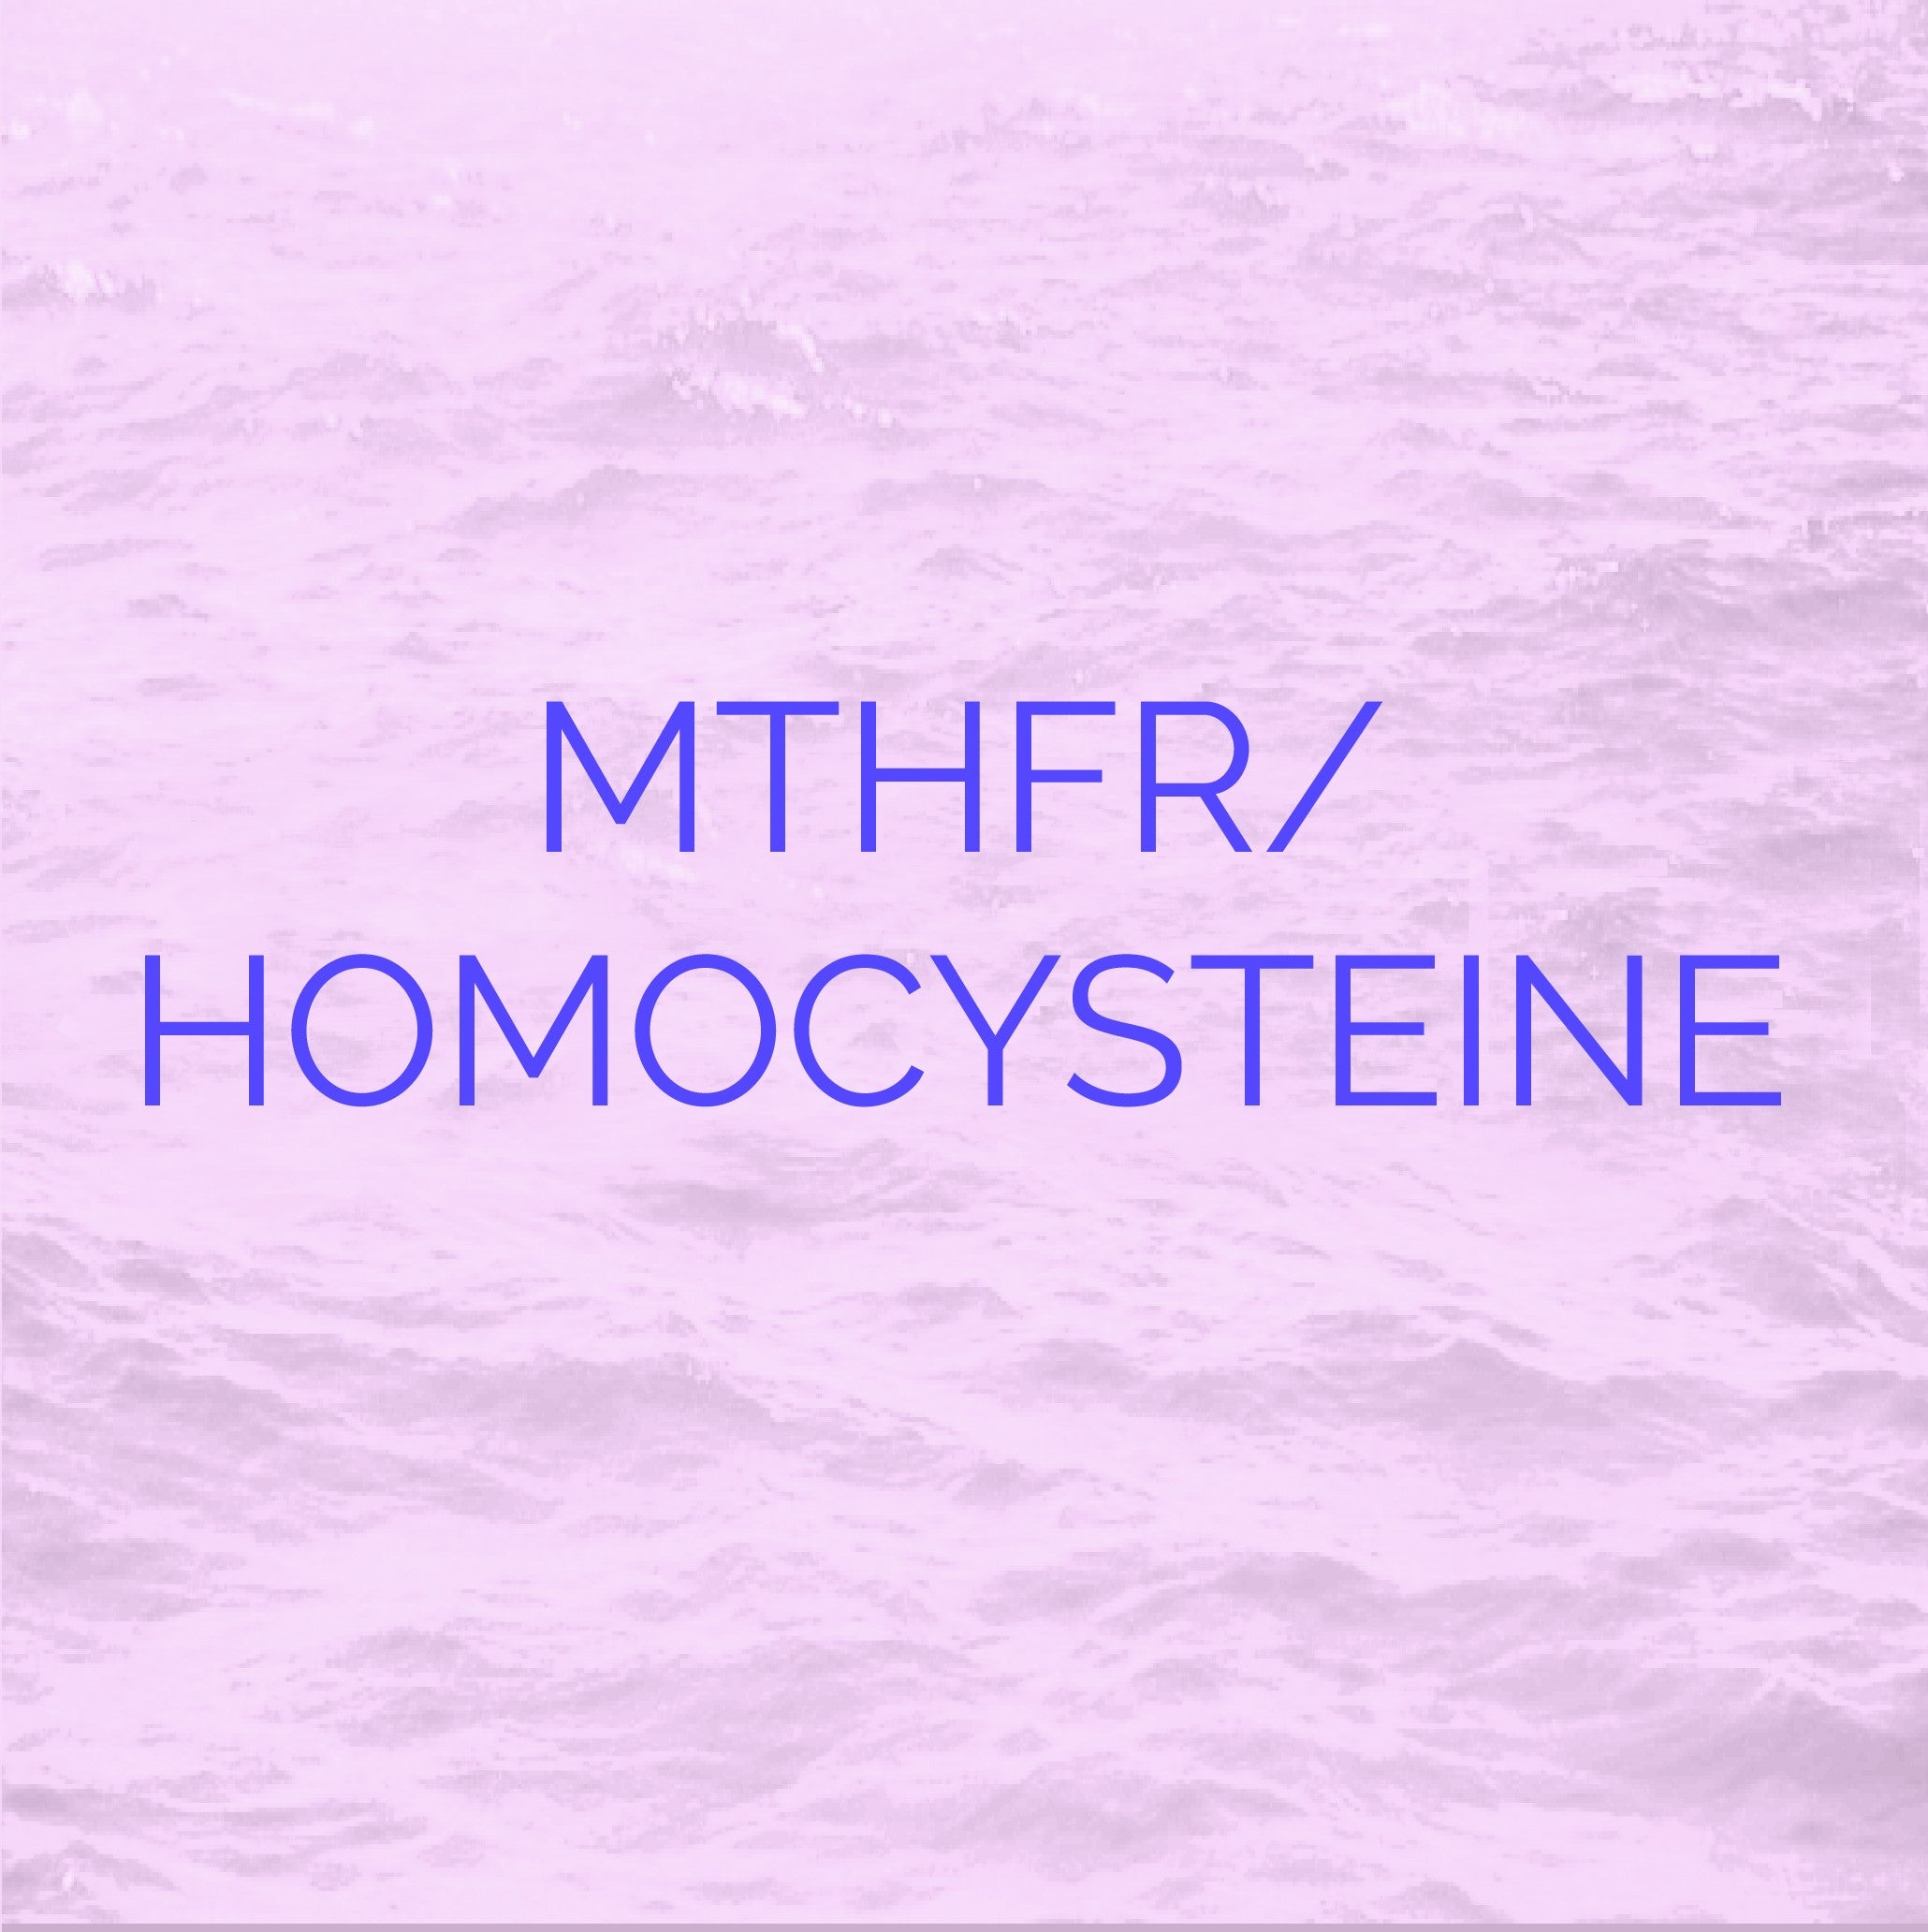 An icon representing MTHFR